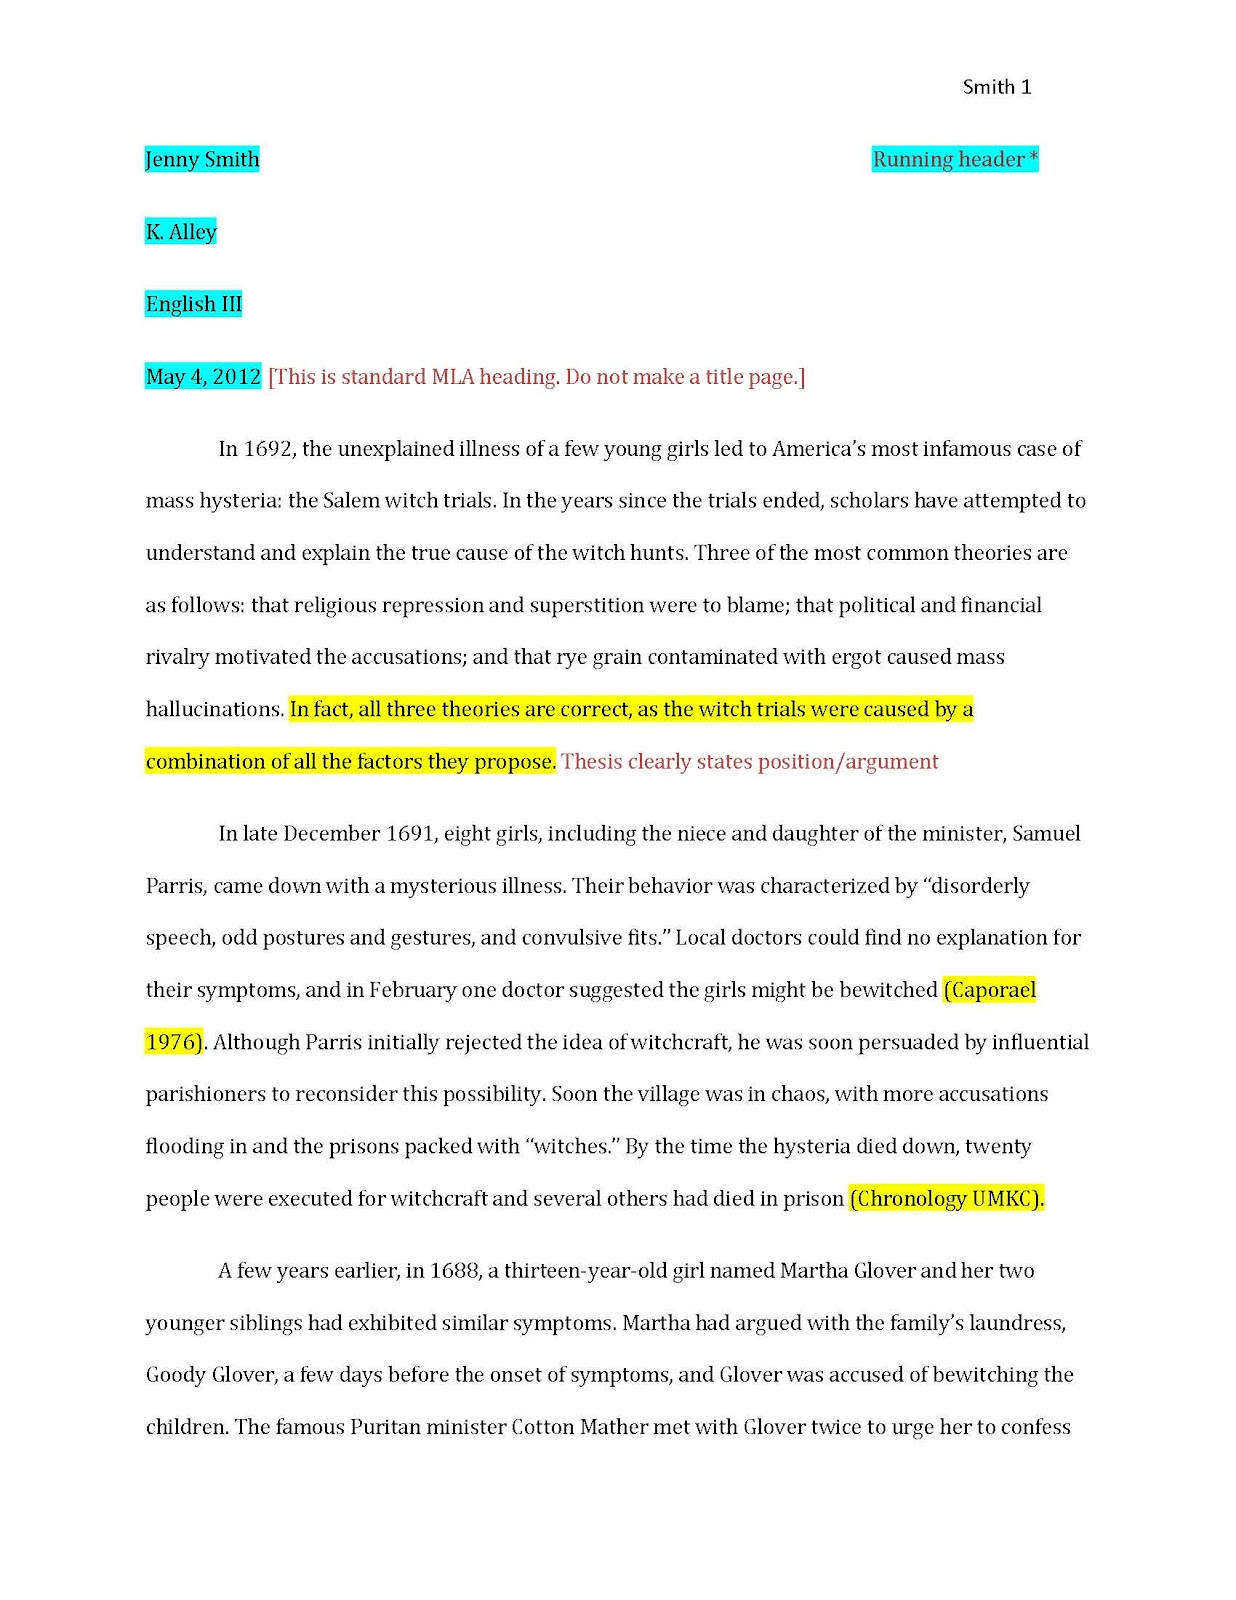 How To Use Citations In Essay | Professional Student Guide With Tips